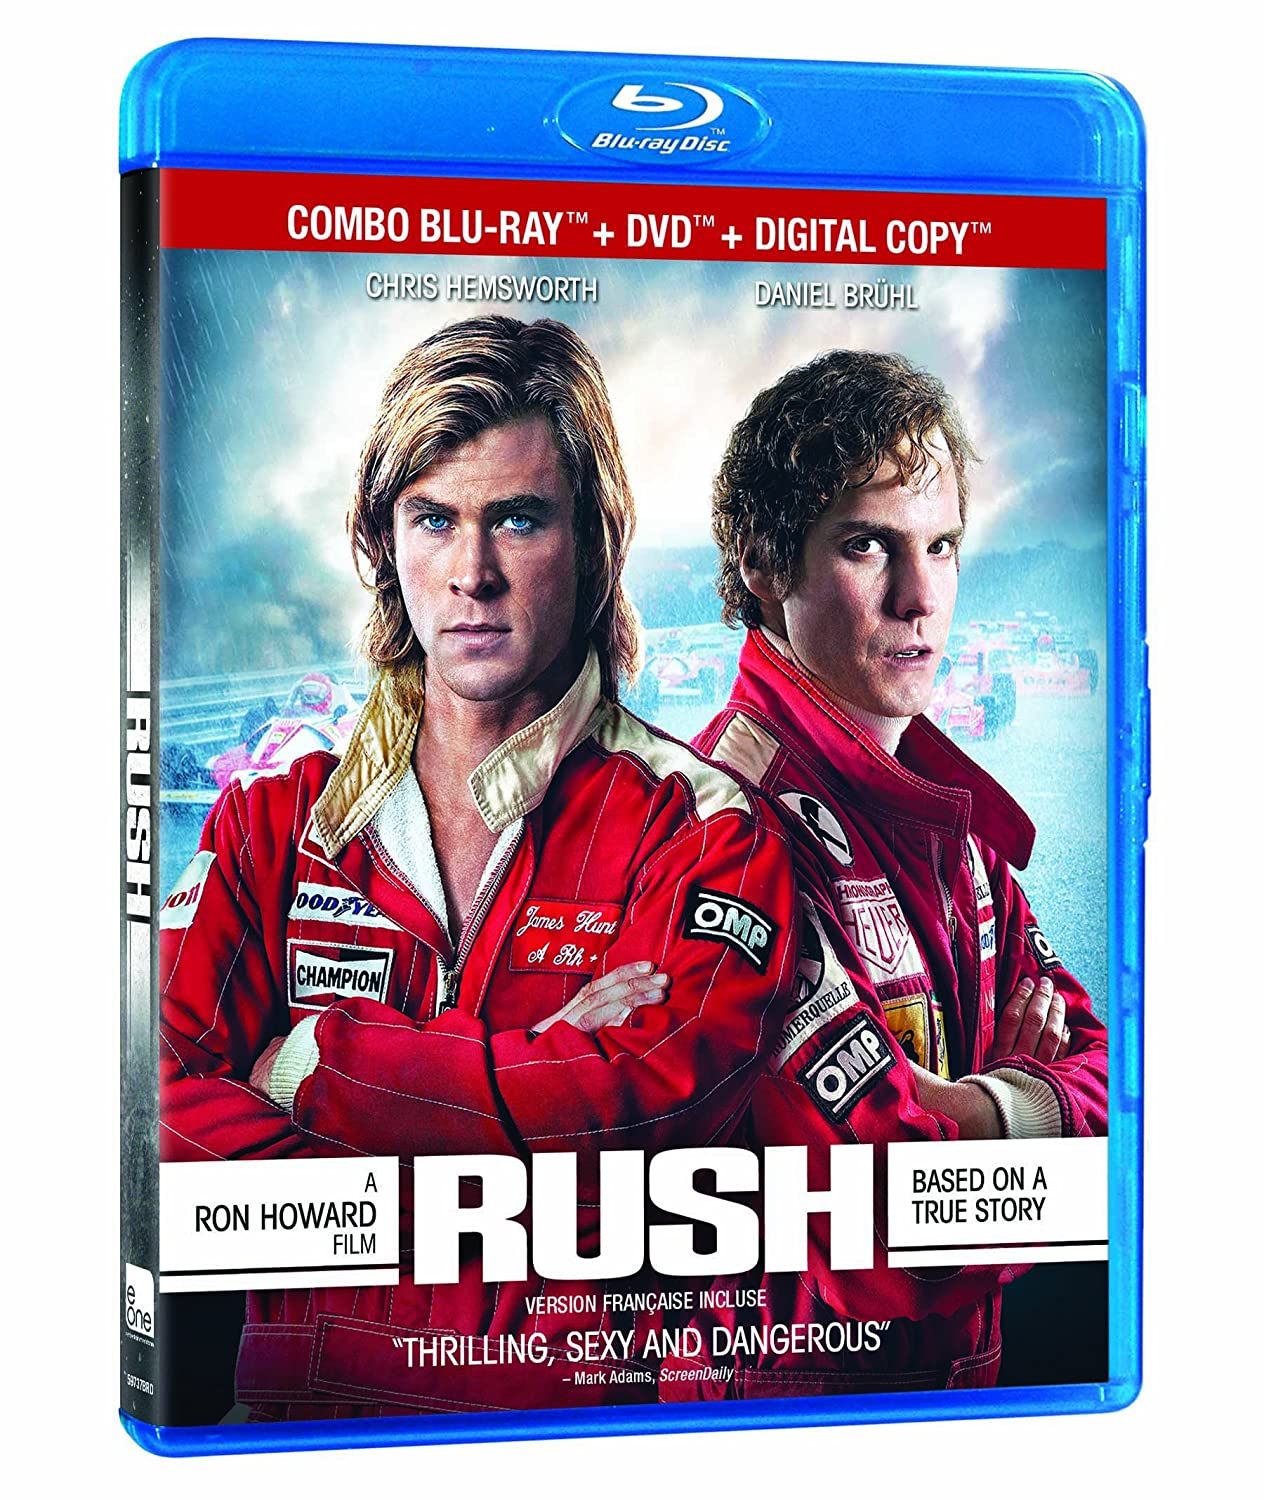 Rush [Blu-ray] Daniel Brühl Chris Hemsworth Olivia Wilde eOne